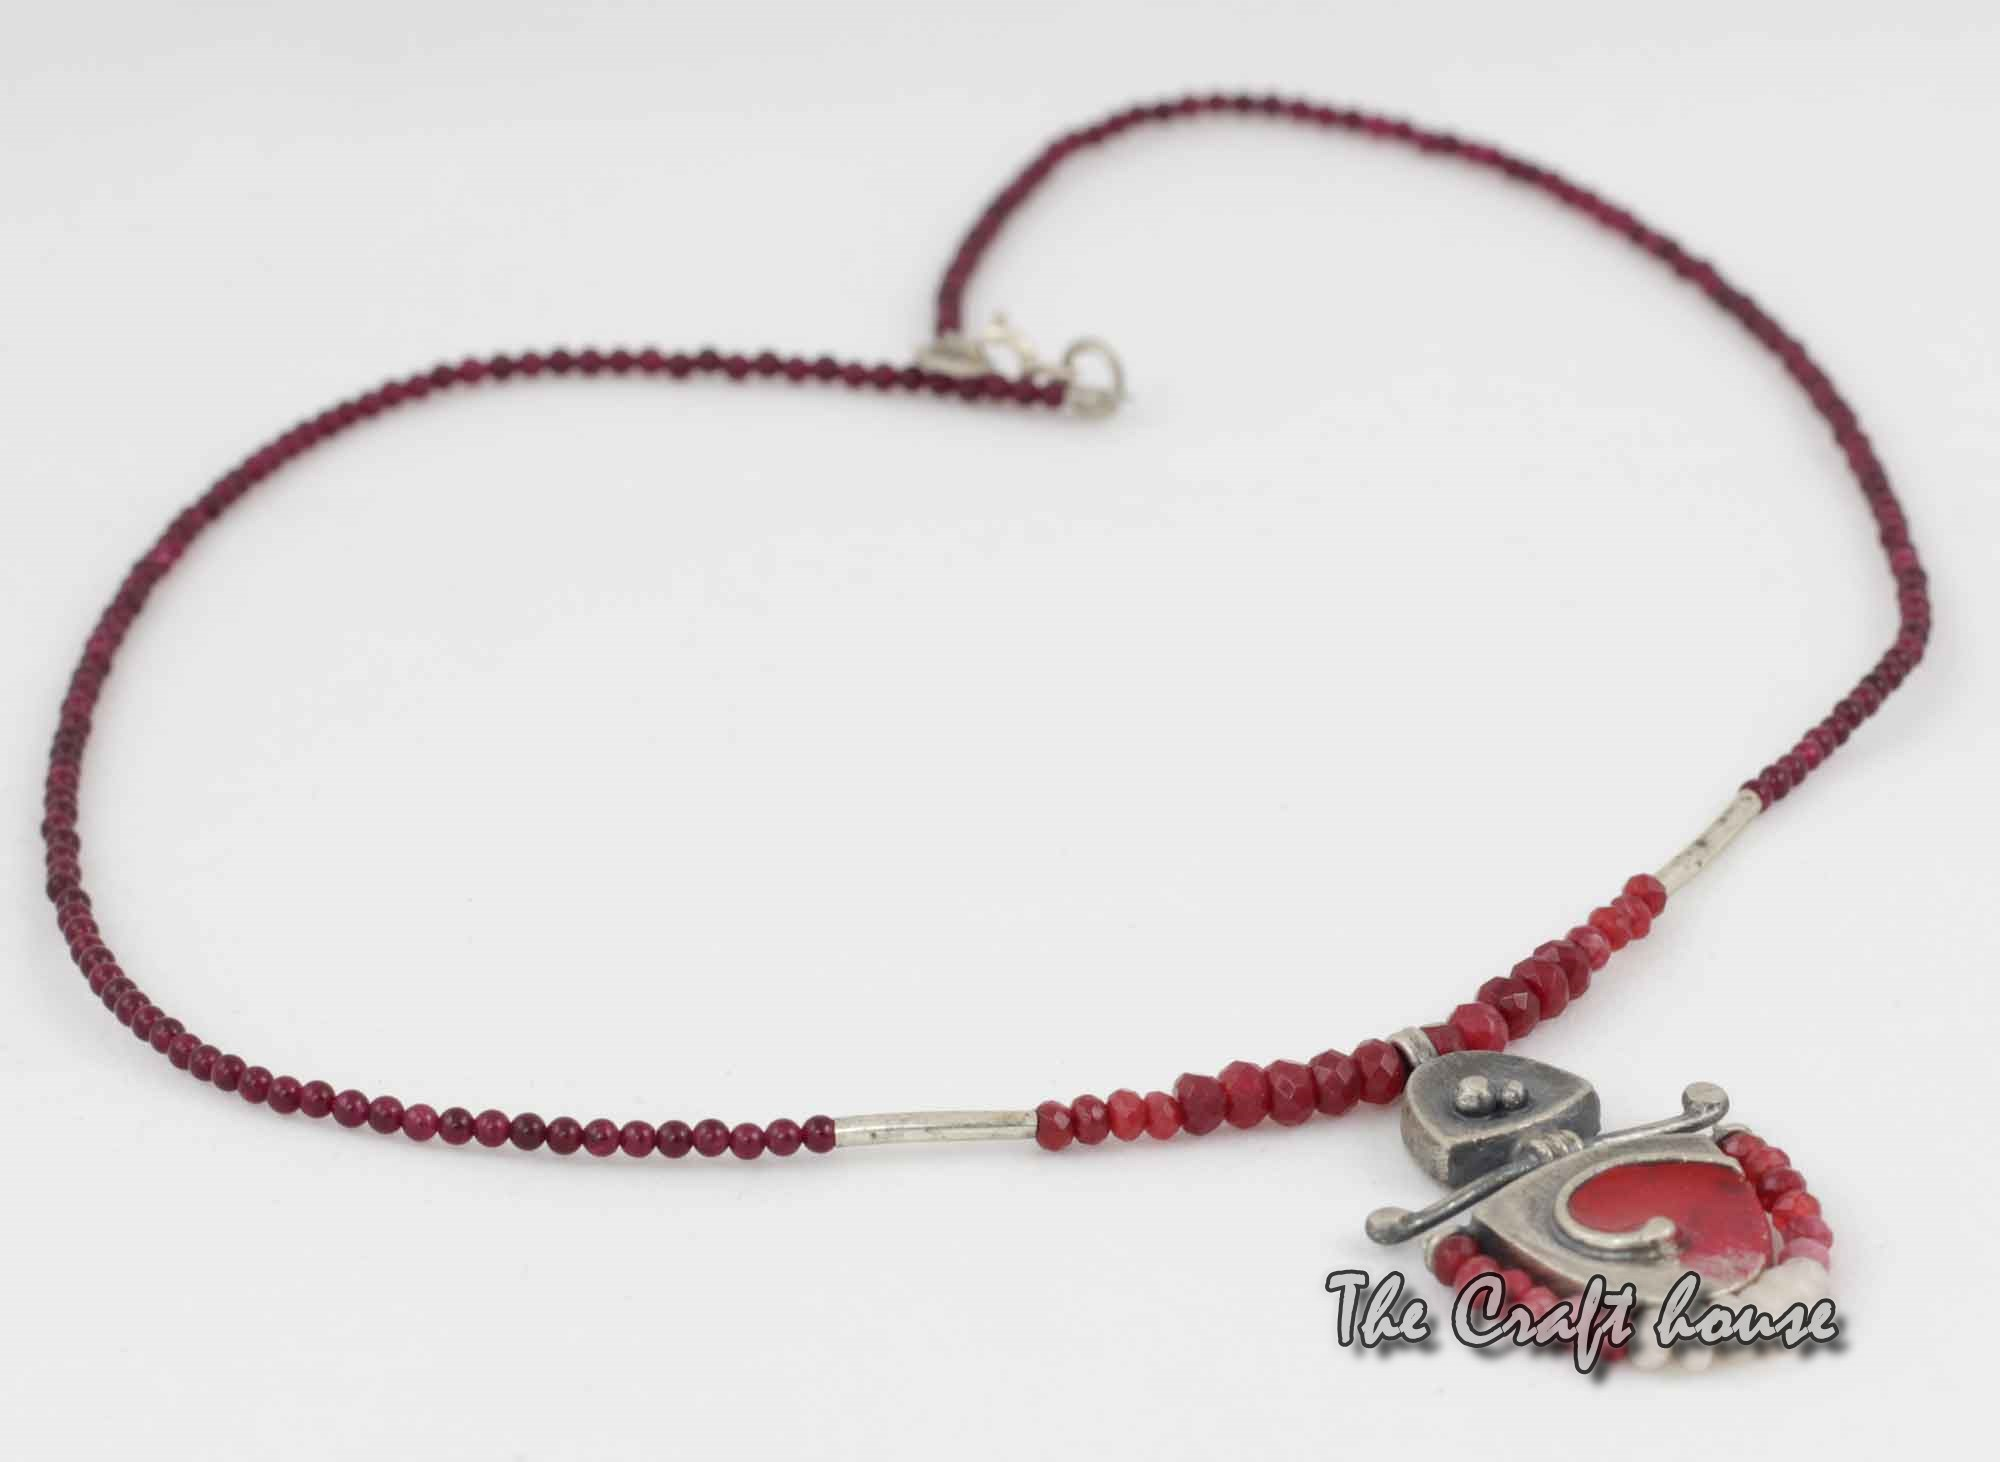 Silver necklace with Garnet and beads